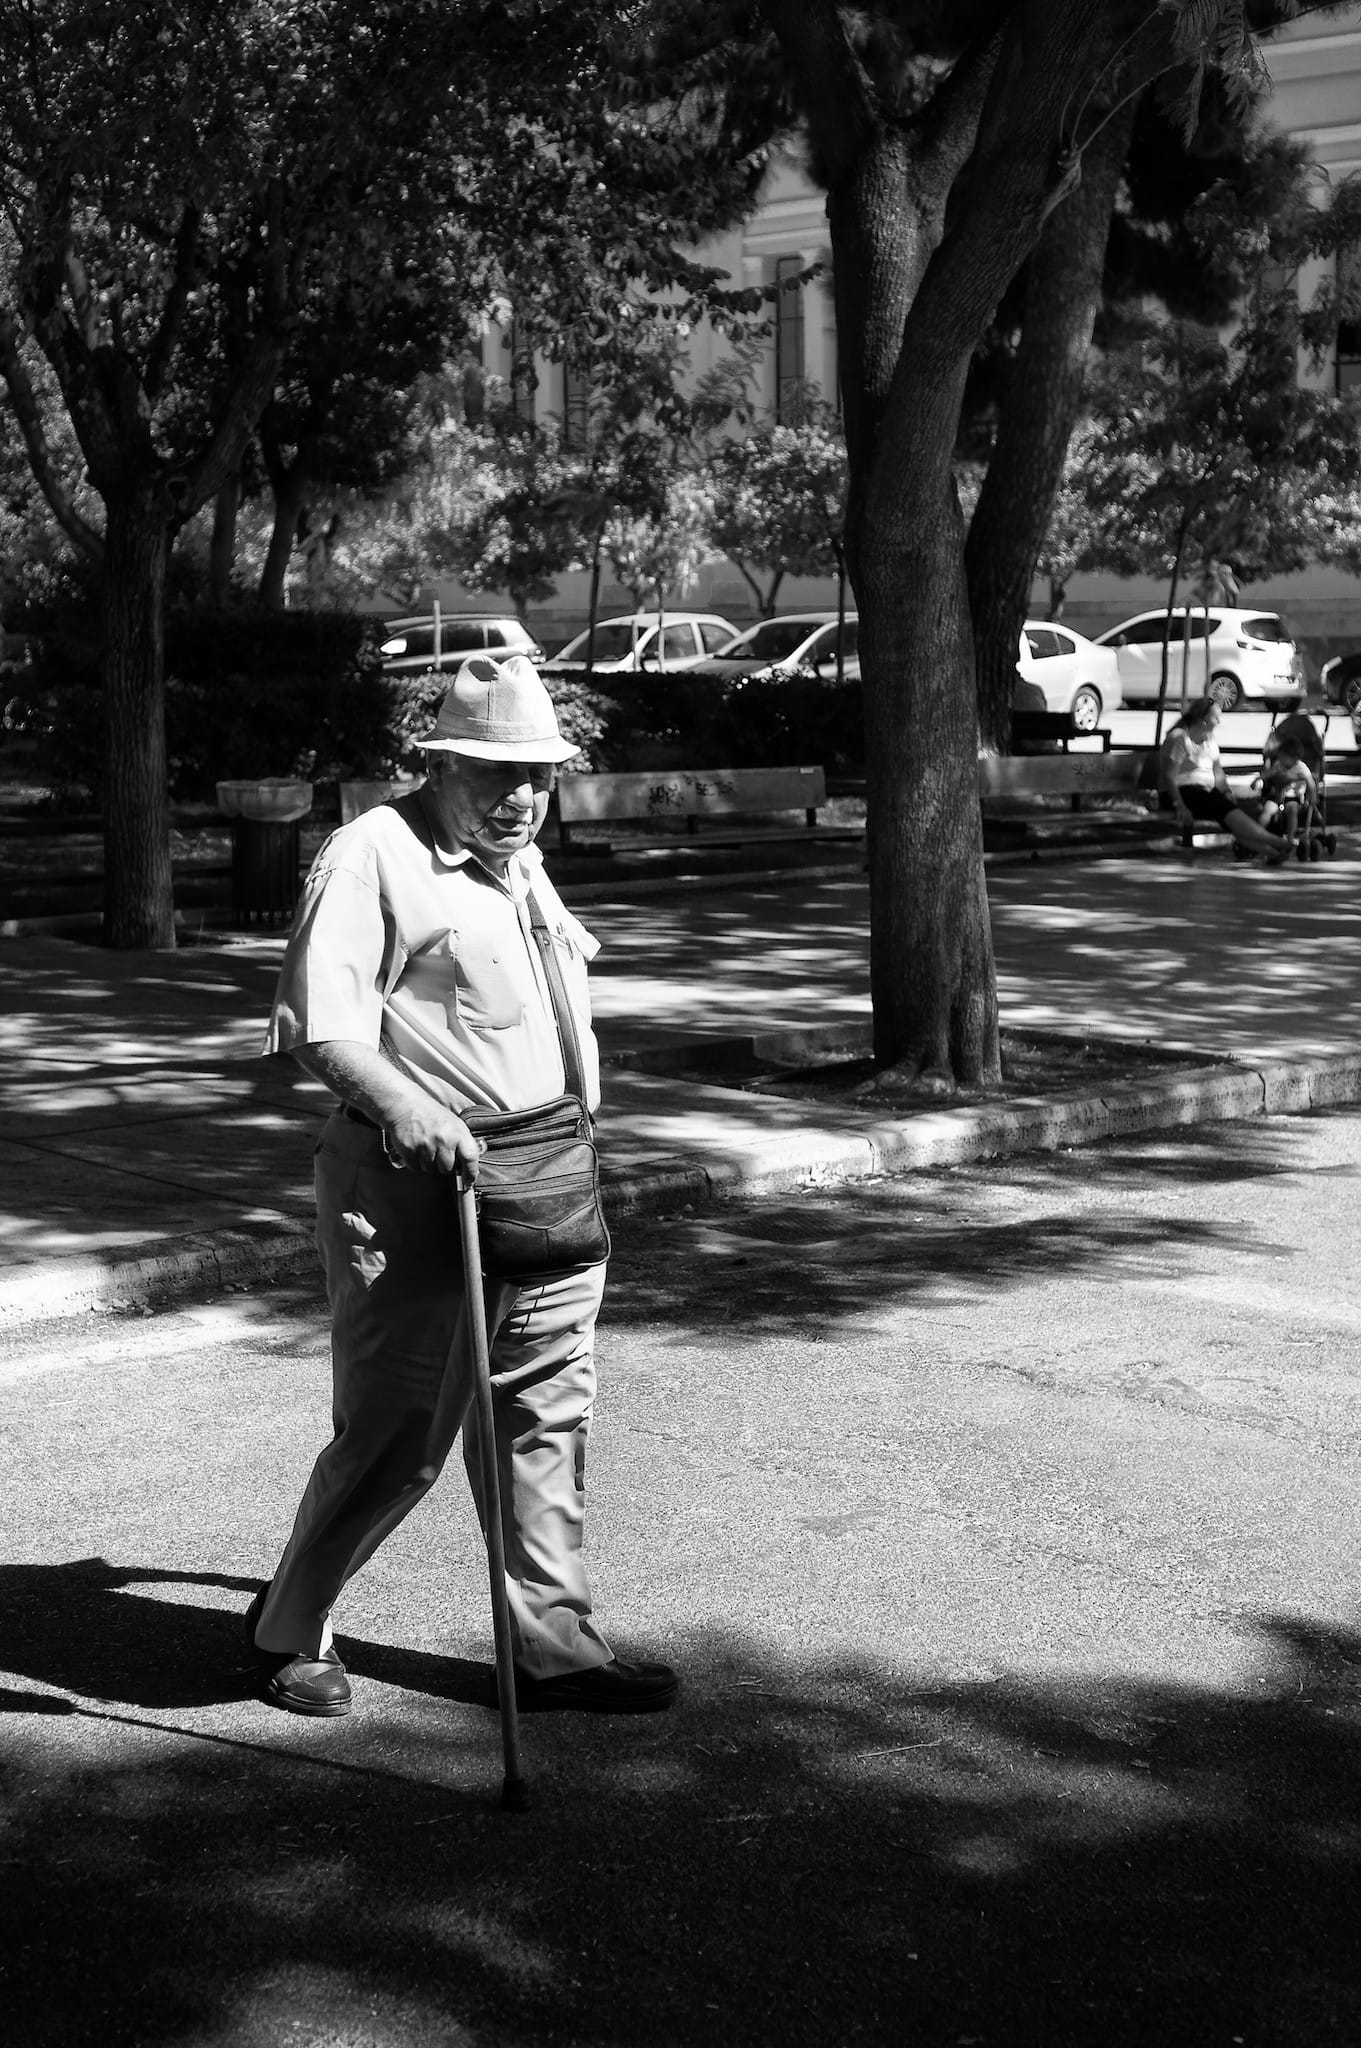 Man in a hat and a walking stick